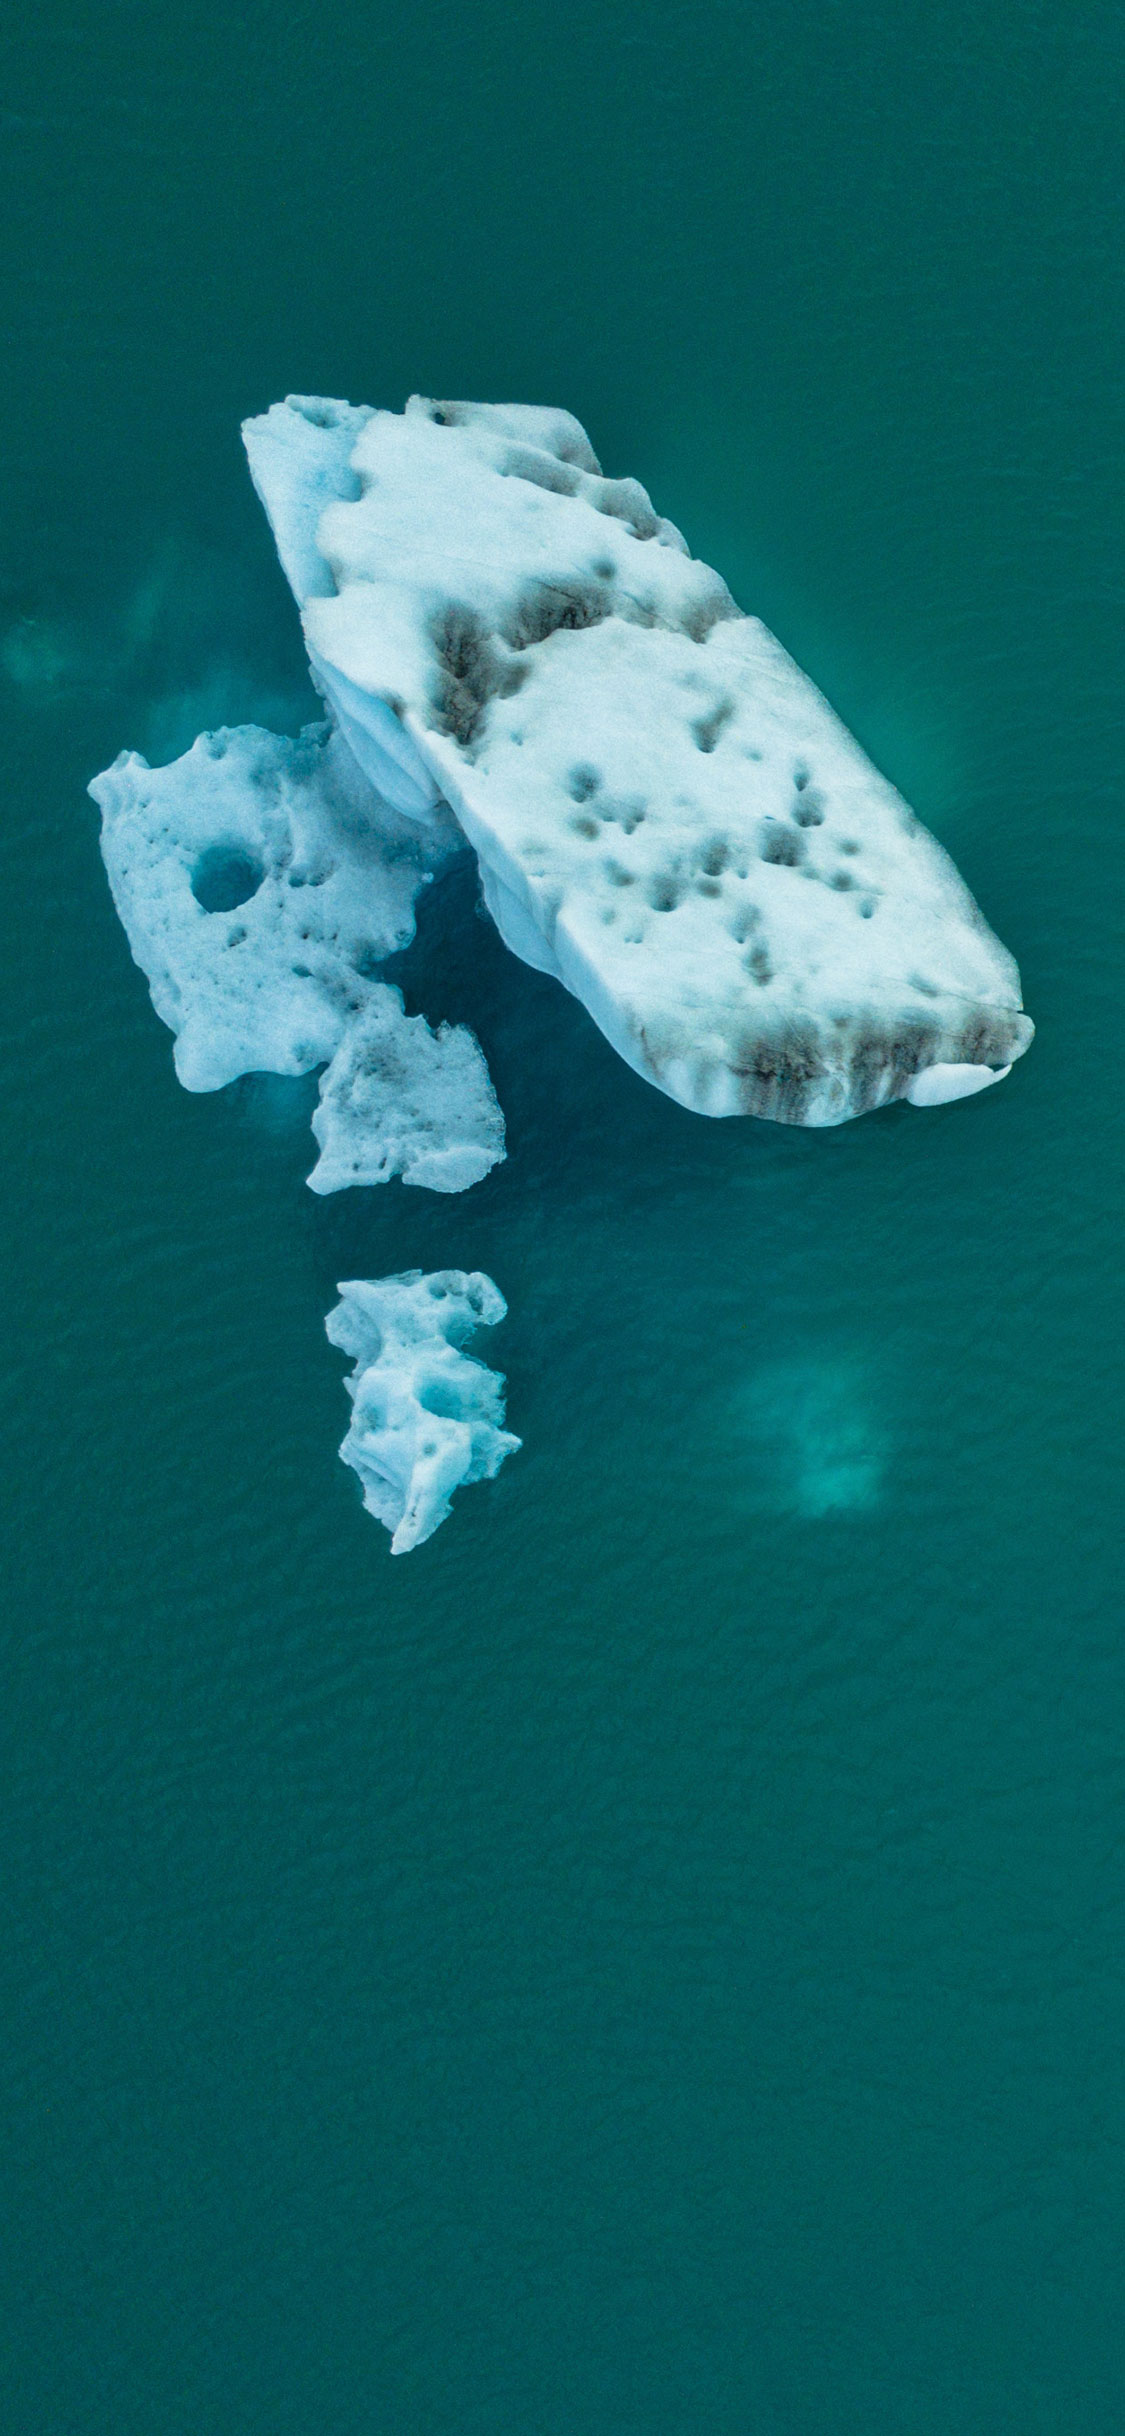 iPhone wallpaper iceberg green Iceberg